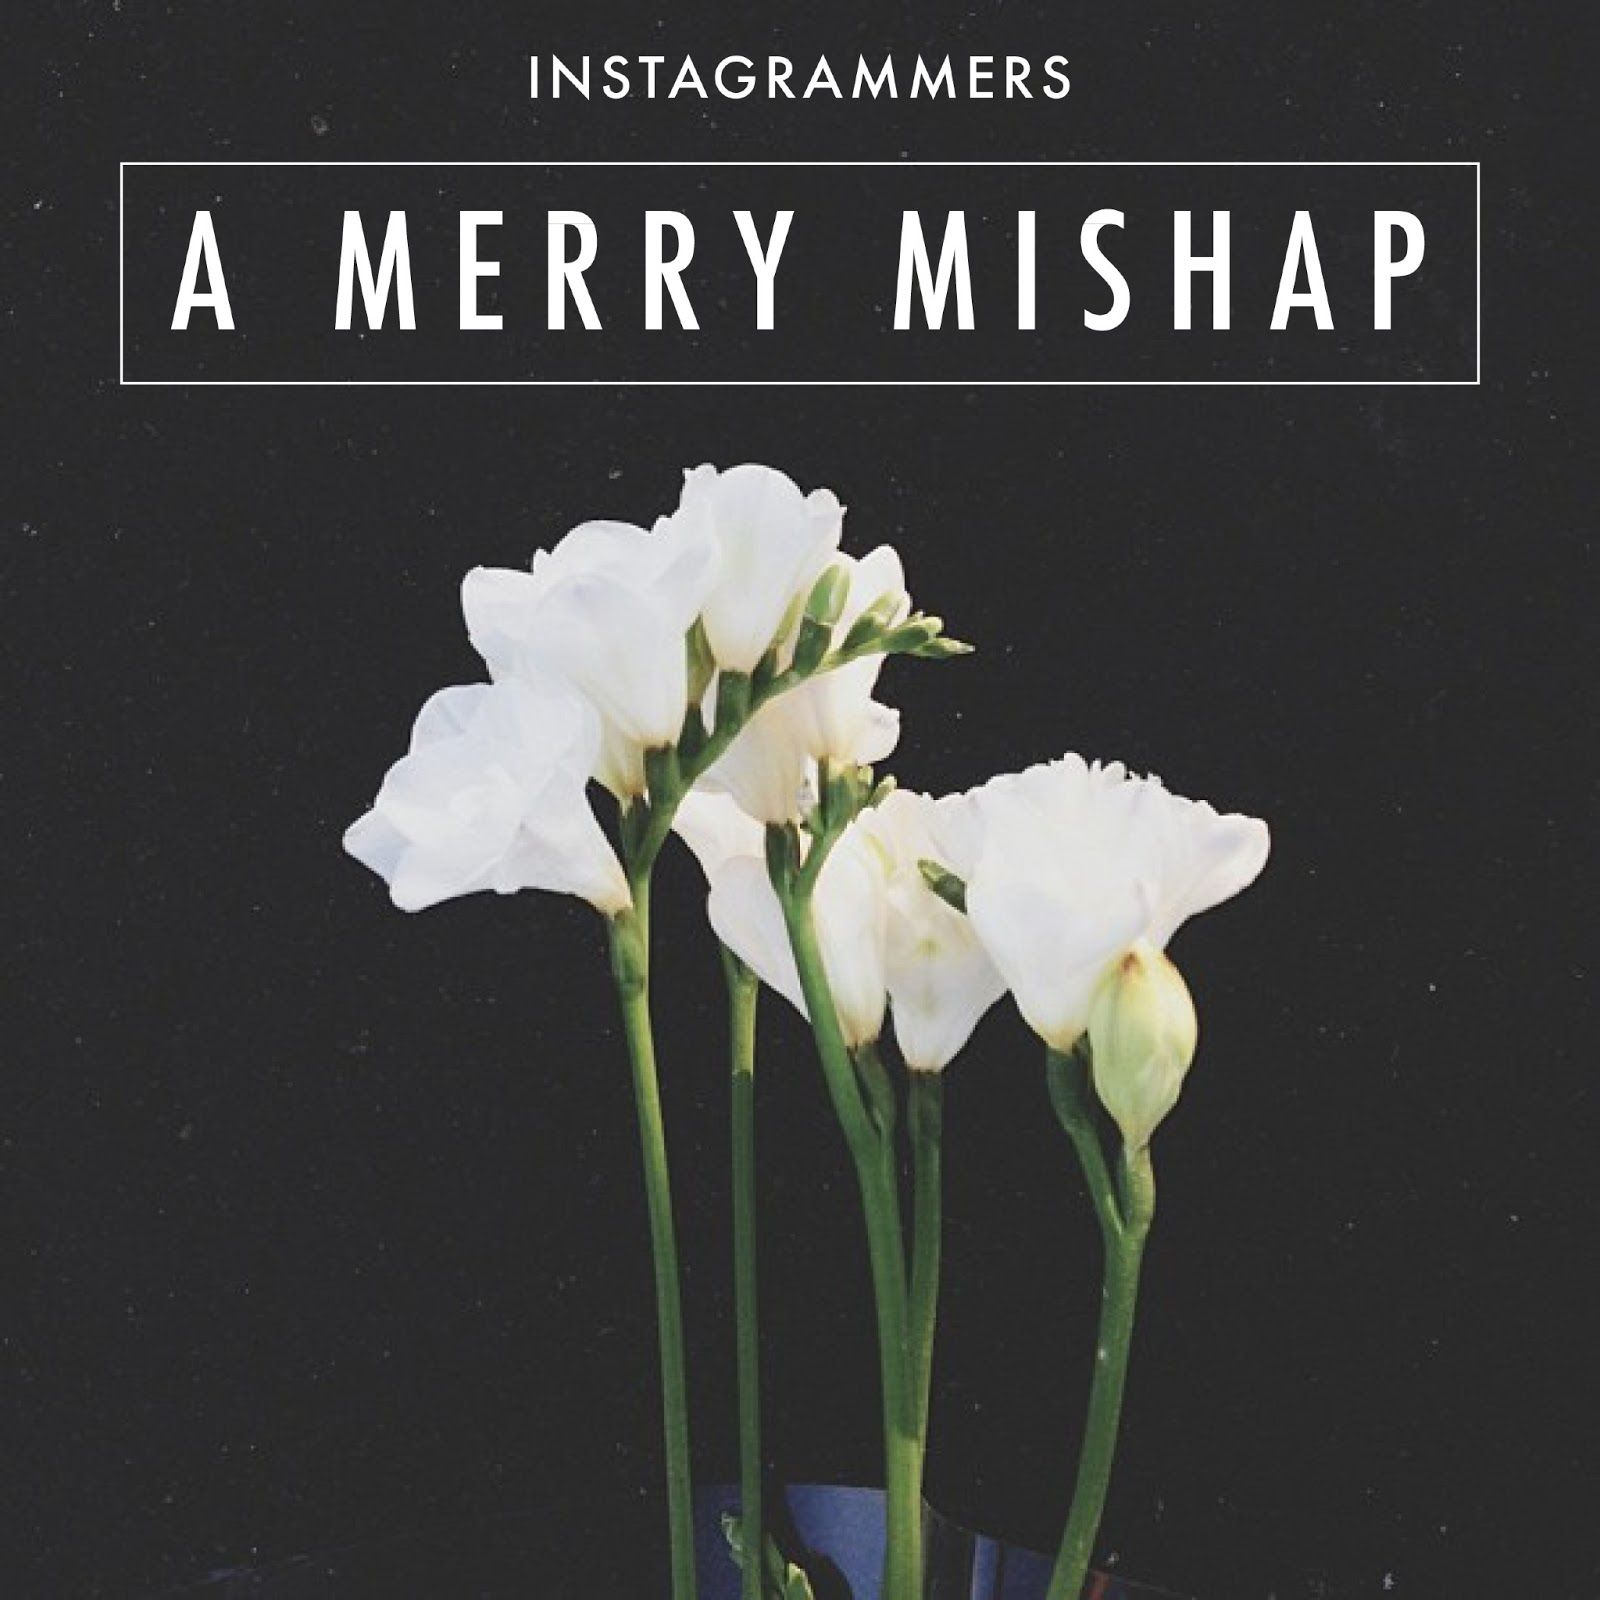 SQUARED PERFECTION #2 /a merry mishap on instagrammers